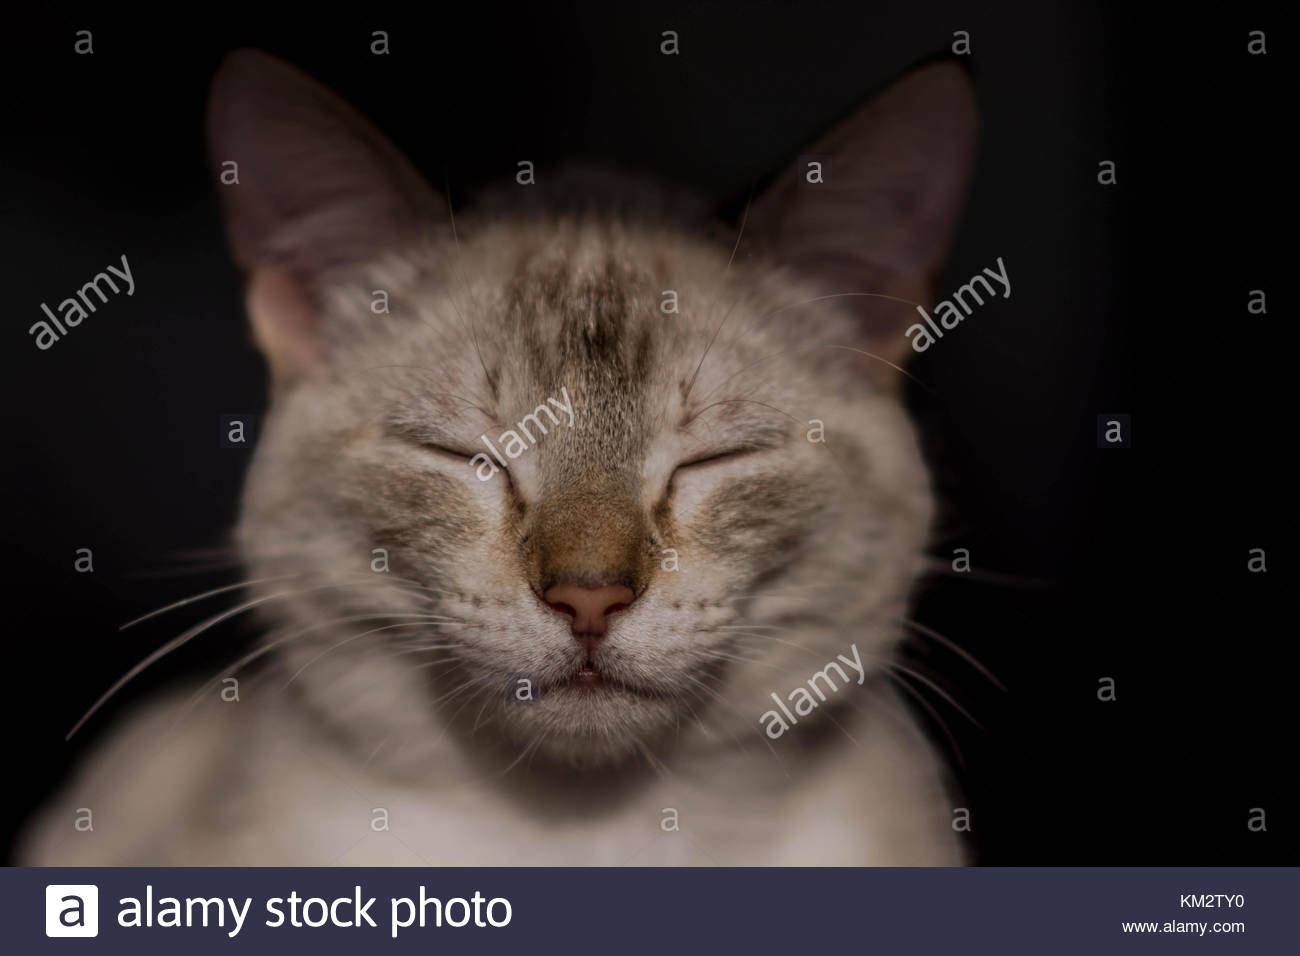 Common female cat resting while the sun light hits its face. - Stock Image